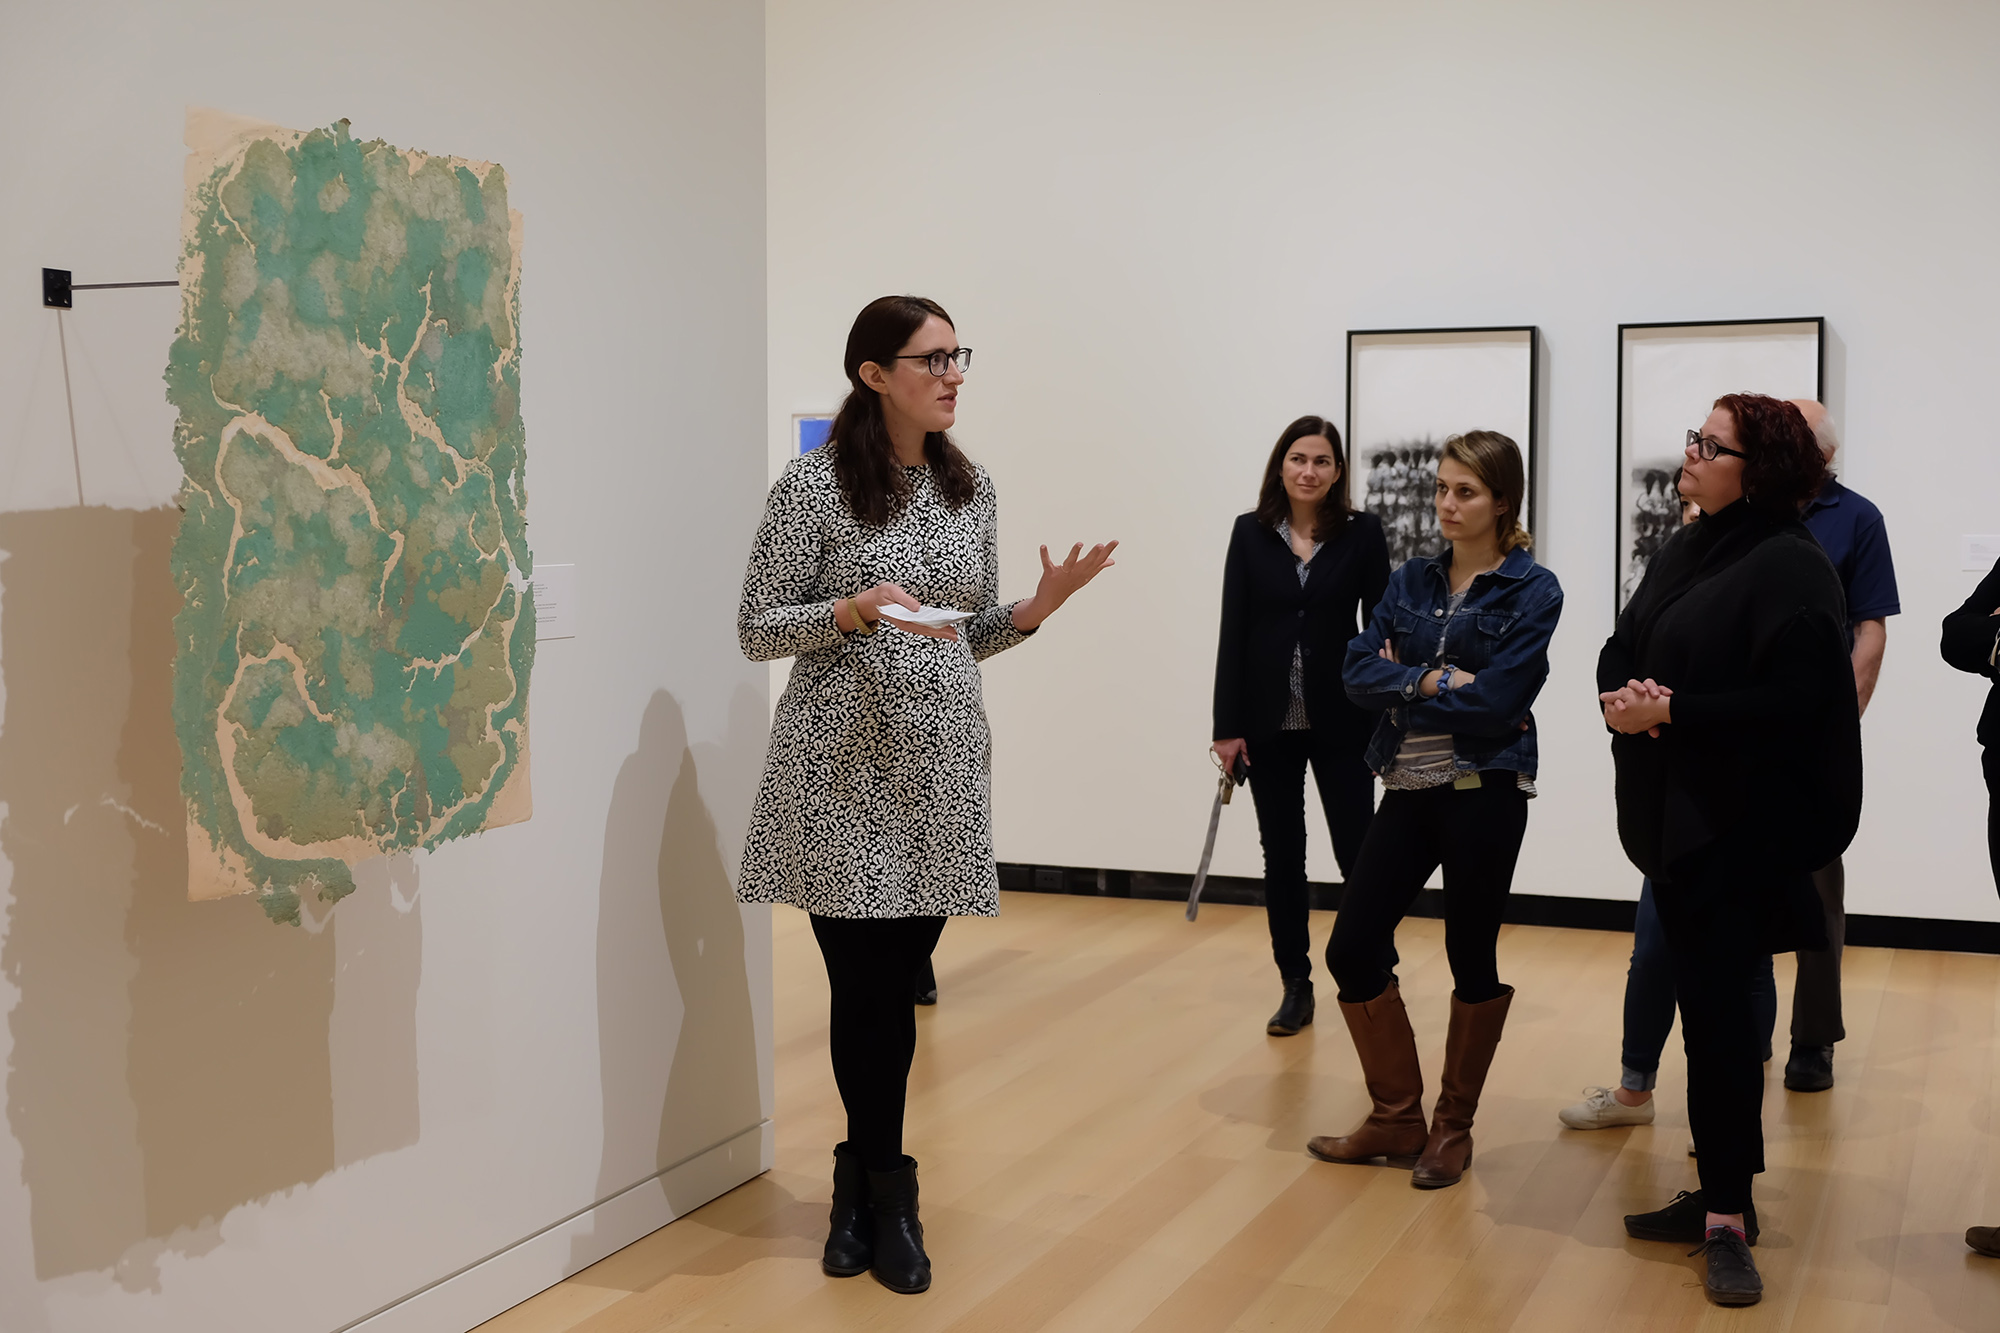 """Bridget Donlon, curator of """"Pure Pulp: Contemporary Artists Working in Paper at Dieu Donné,"""" leads a tour of the Wellin exhibit."""